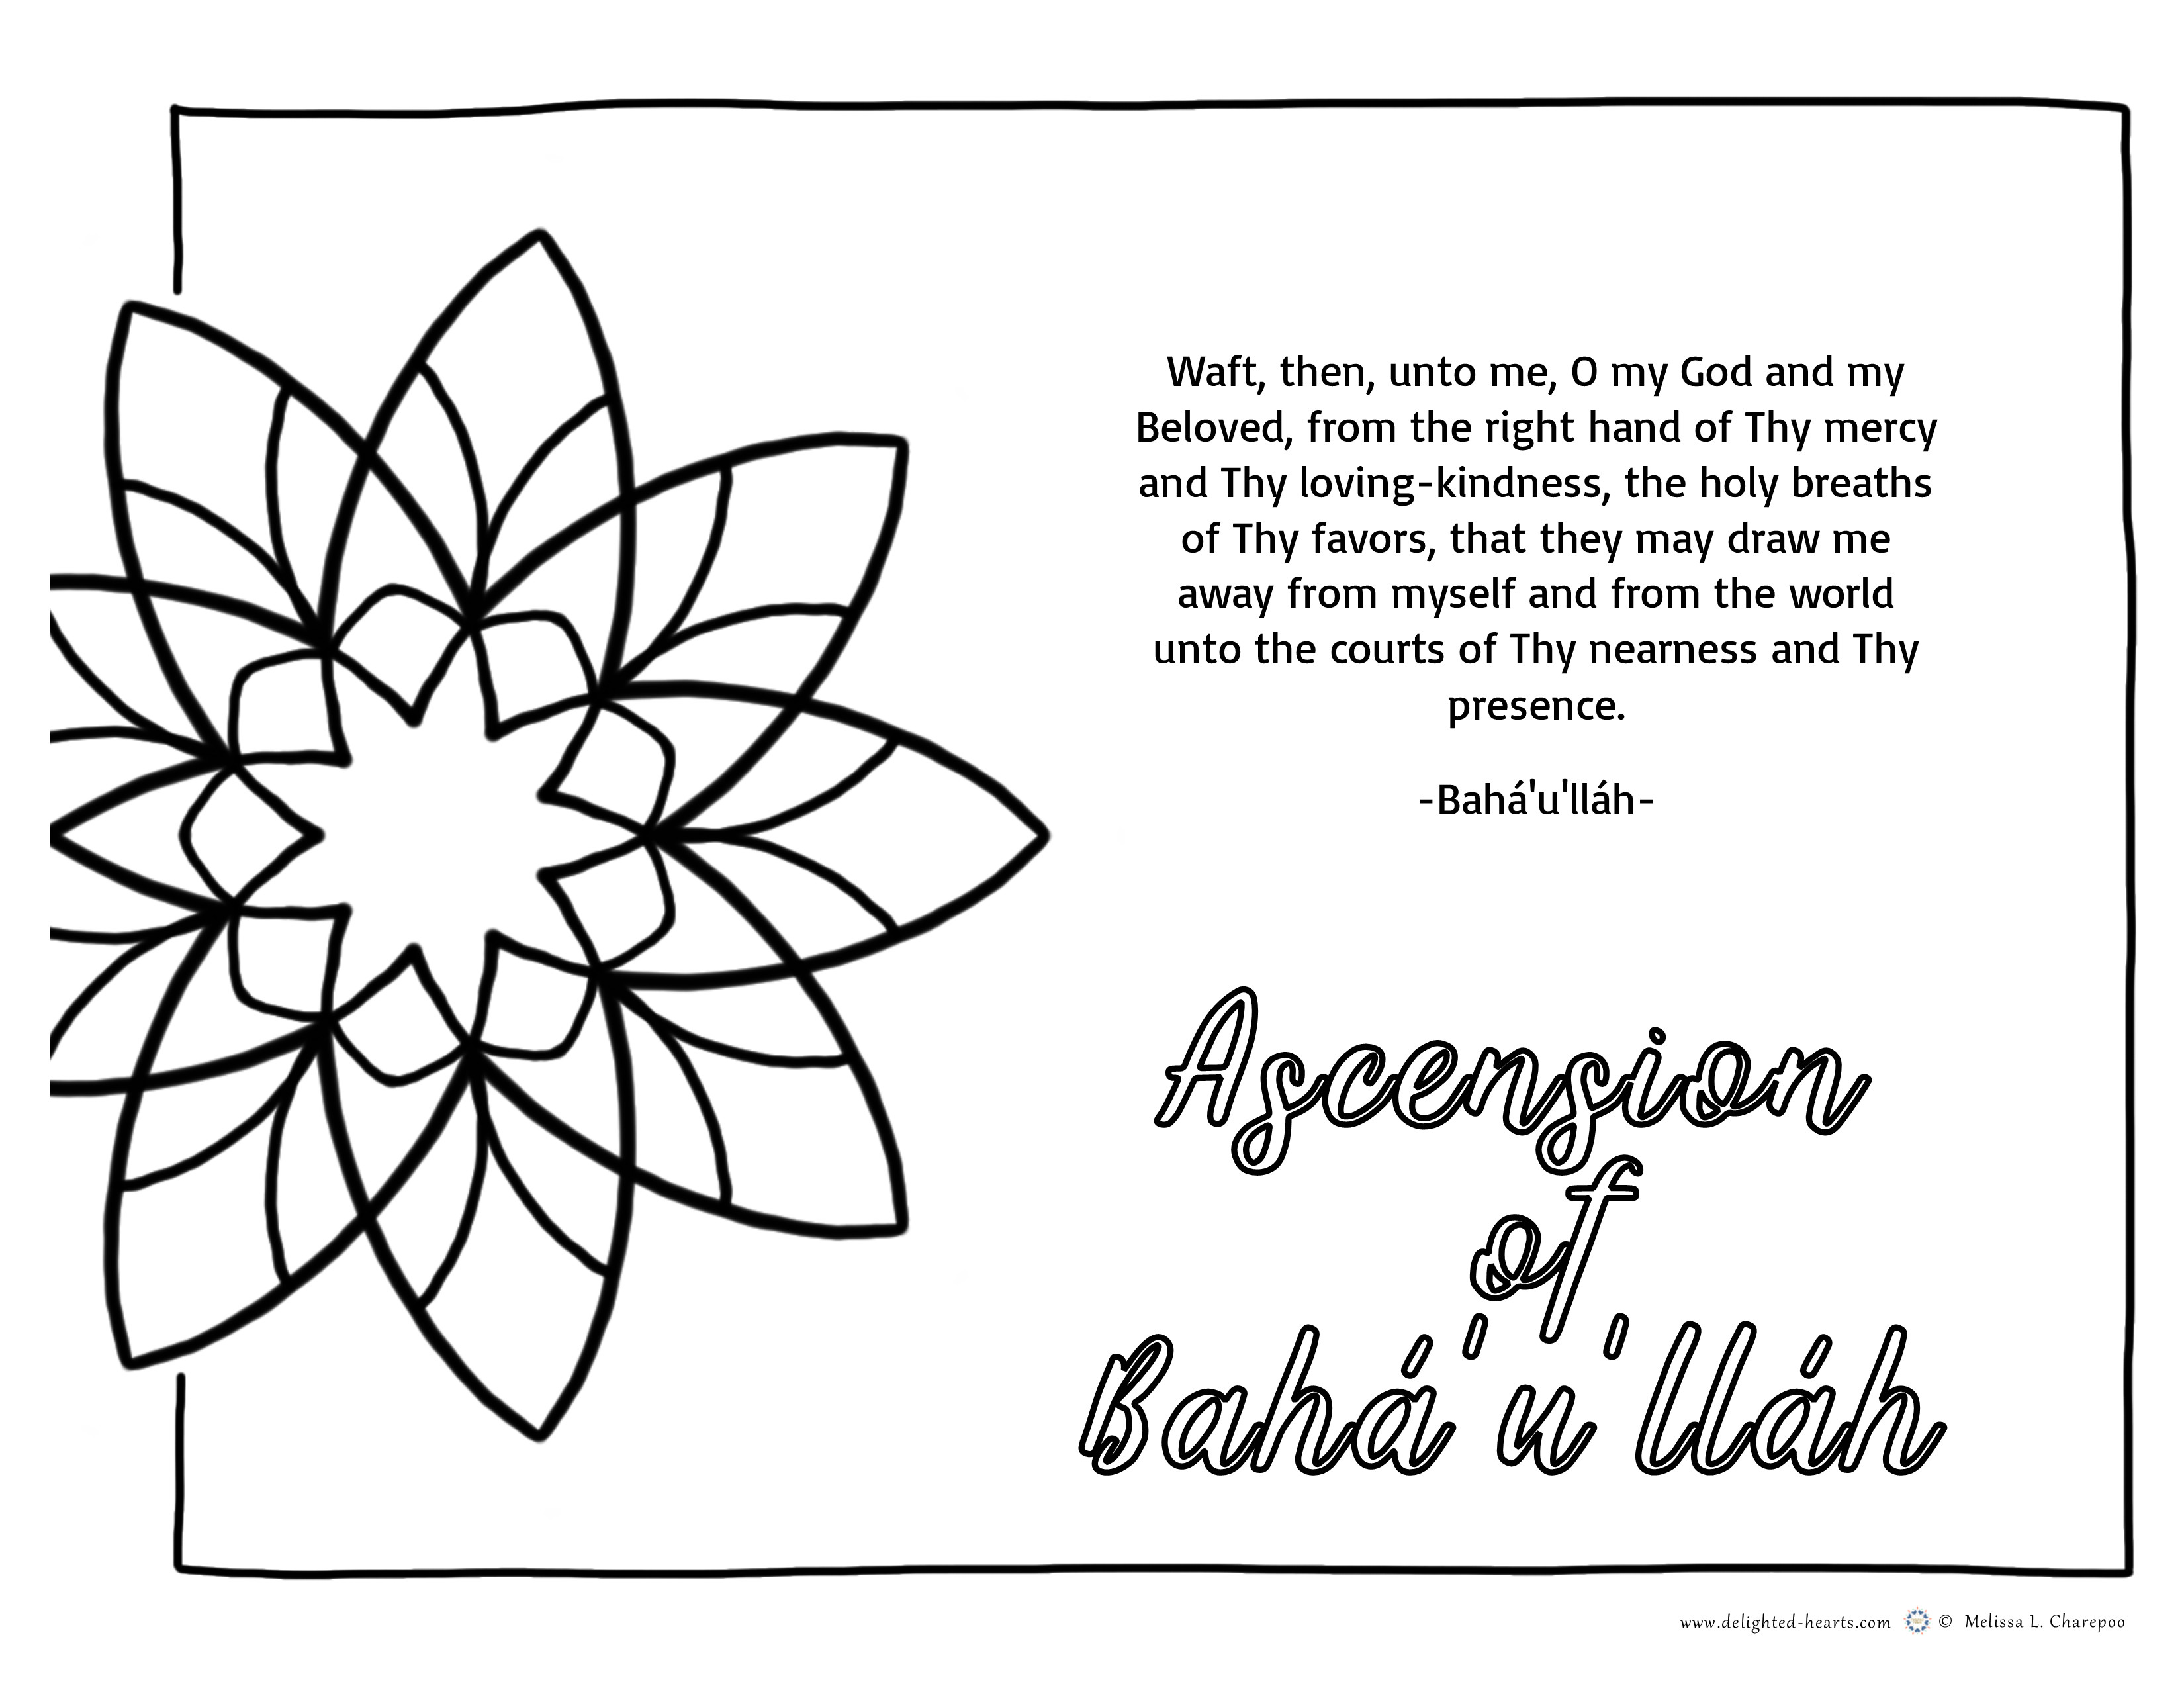 Ascencion Bahaullah_ 177_DHLLC_Melissa Charepoo_Coloring Page_ 9 pointed star